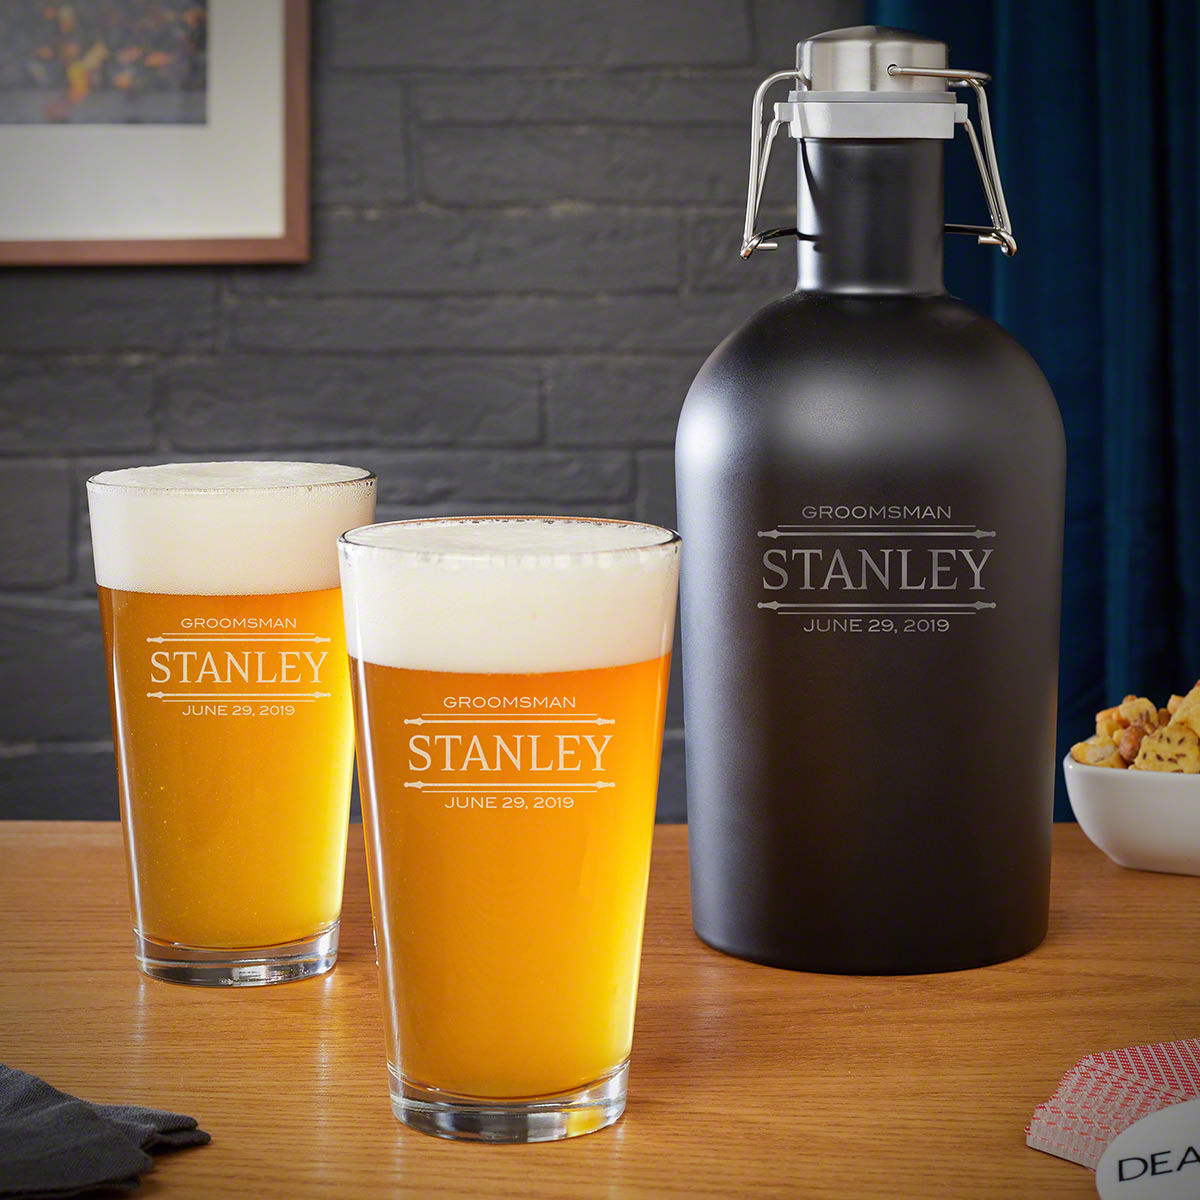 Stanford Personalized Growler and Pint Glass Groomsmen Gift Set